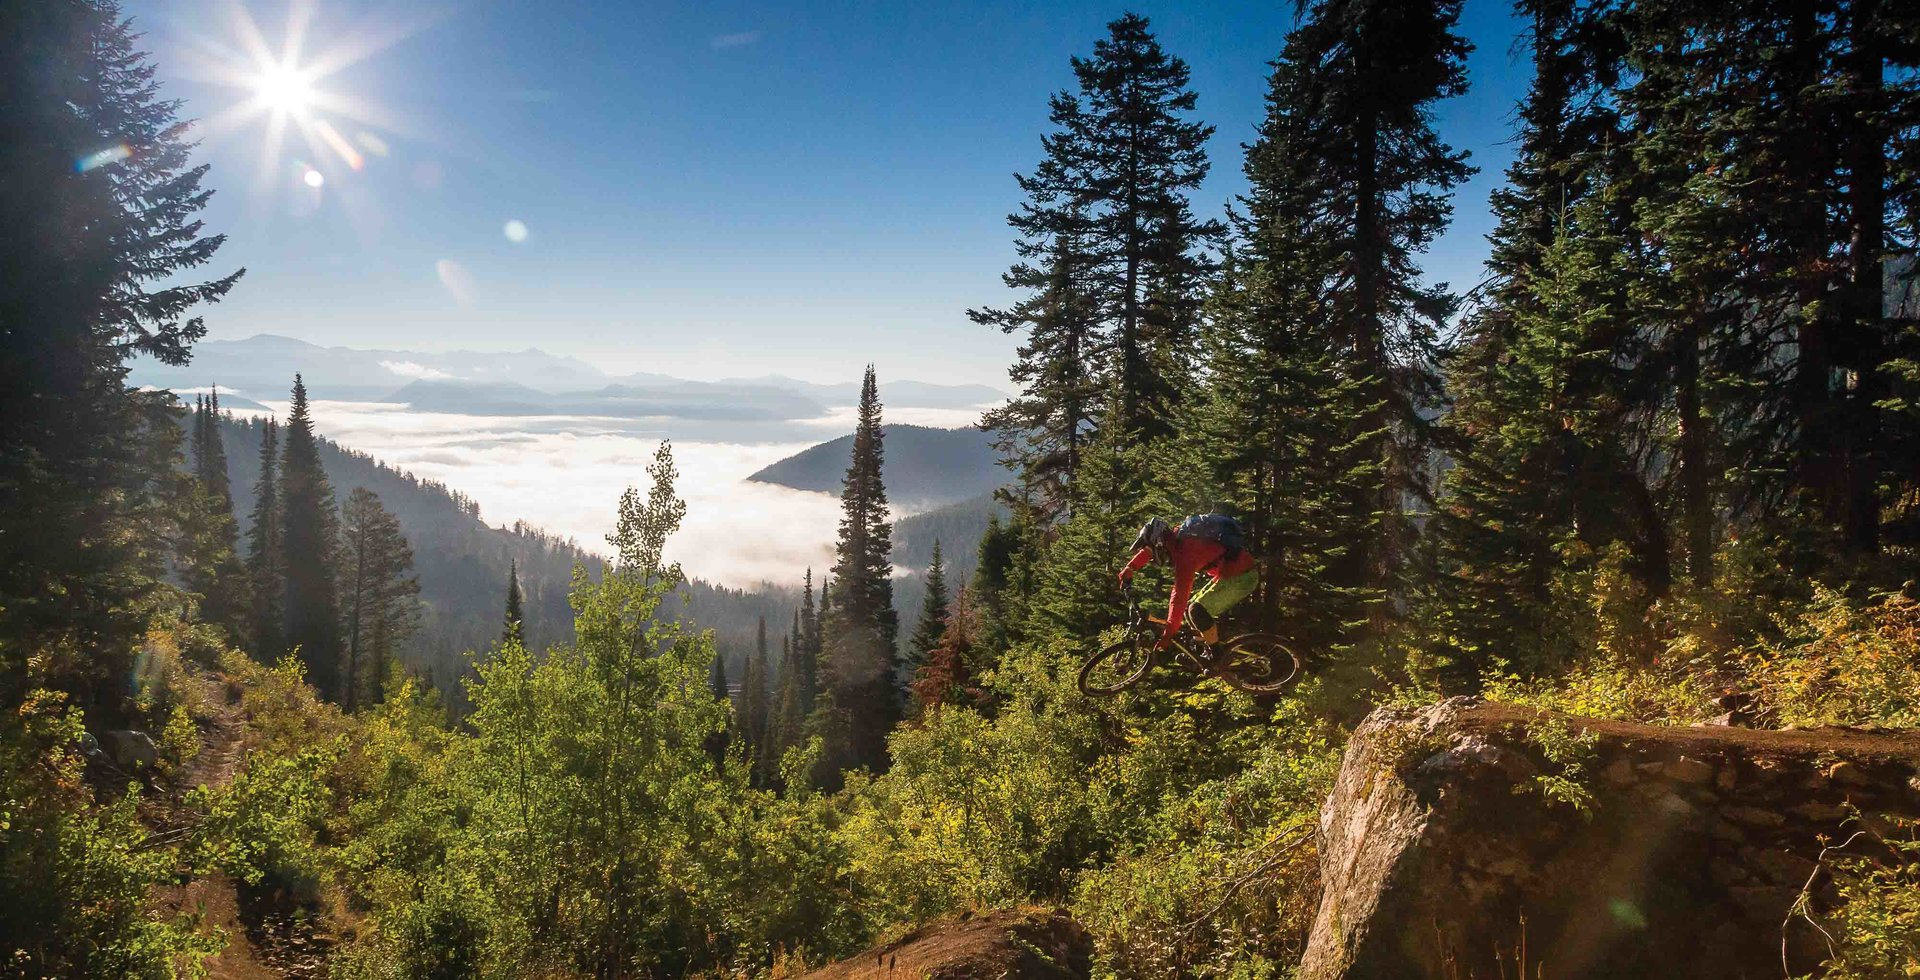 Teton Pass' Fuzzy Bunny Trail might sound cute and fluffy, but there are plenty of moves that can eat even experienced riders. Andrew Whiteford risks life and limb while sending one of the trail's many gaps, just as the fog rolls into the valley below.